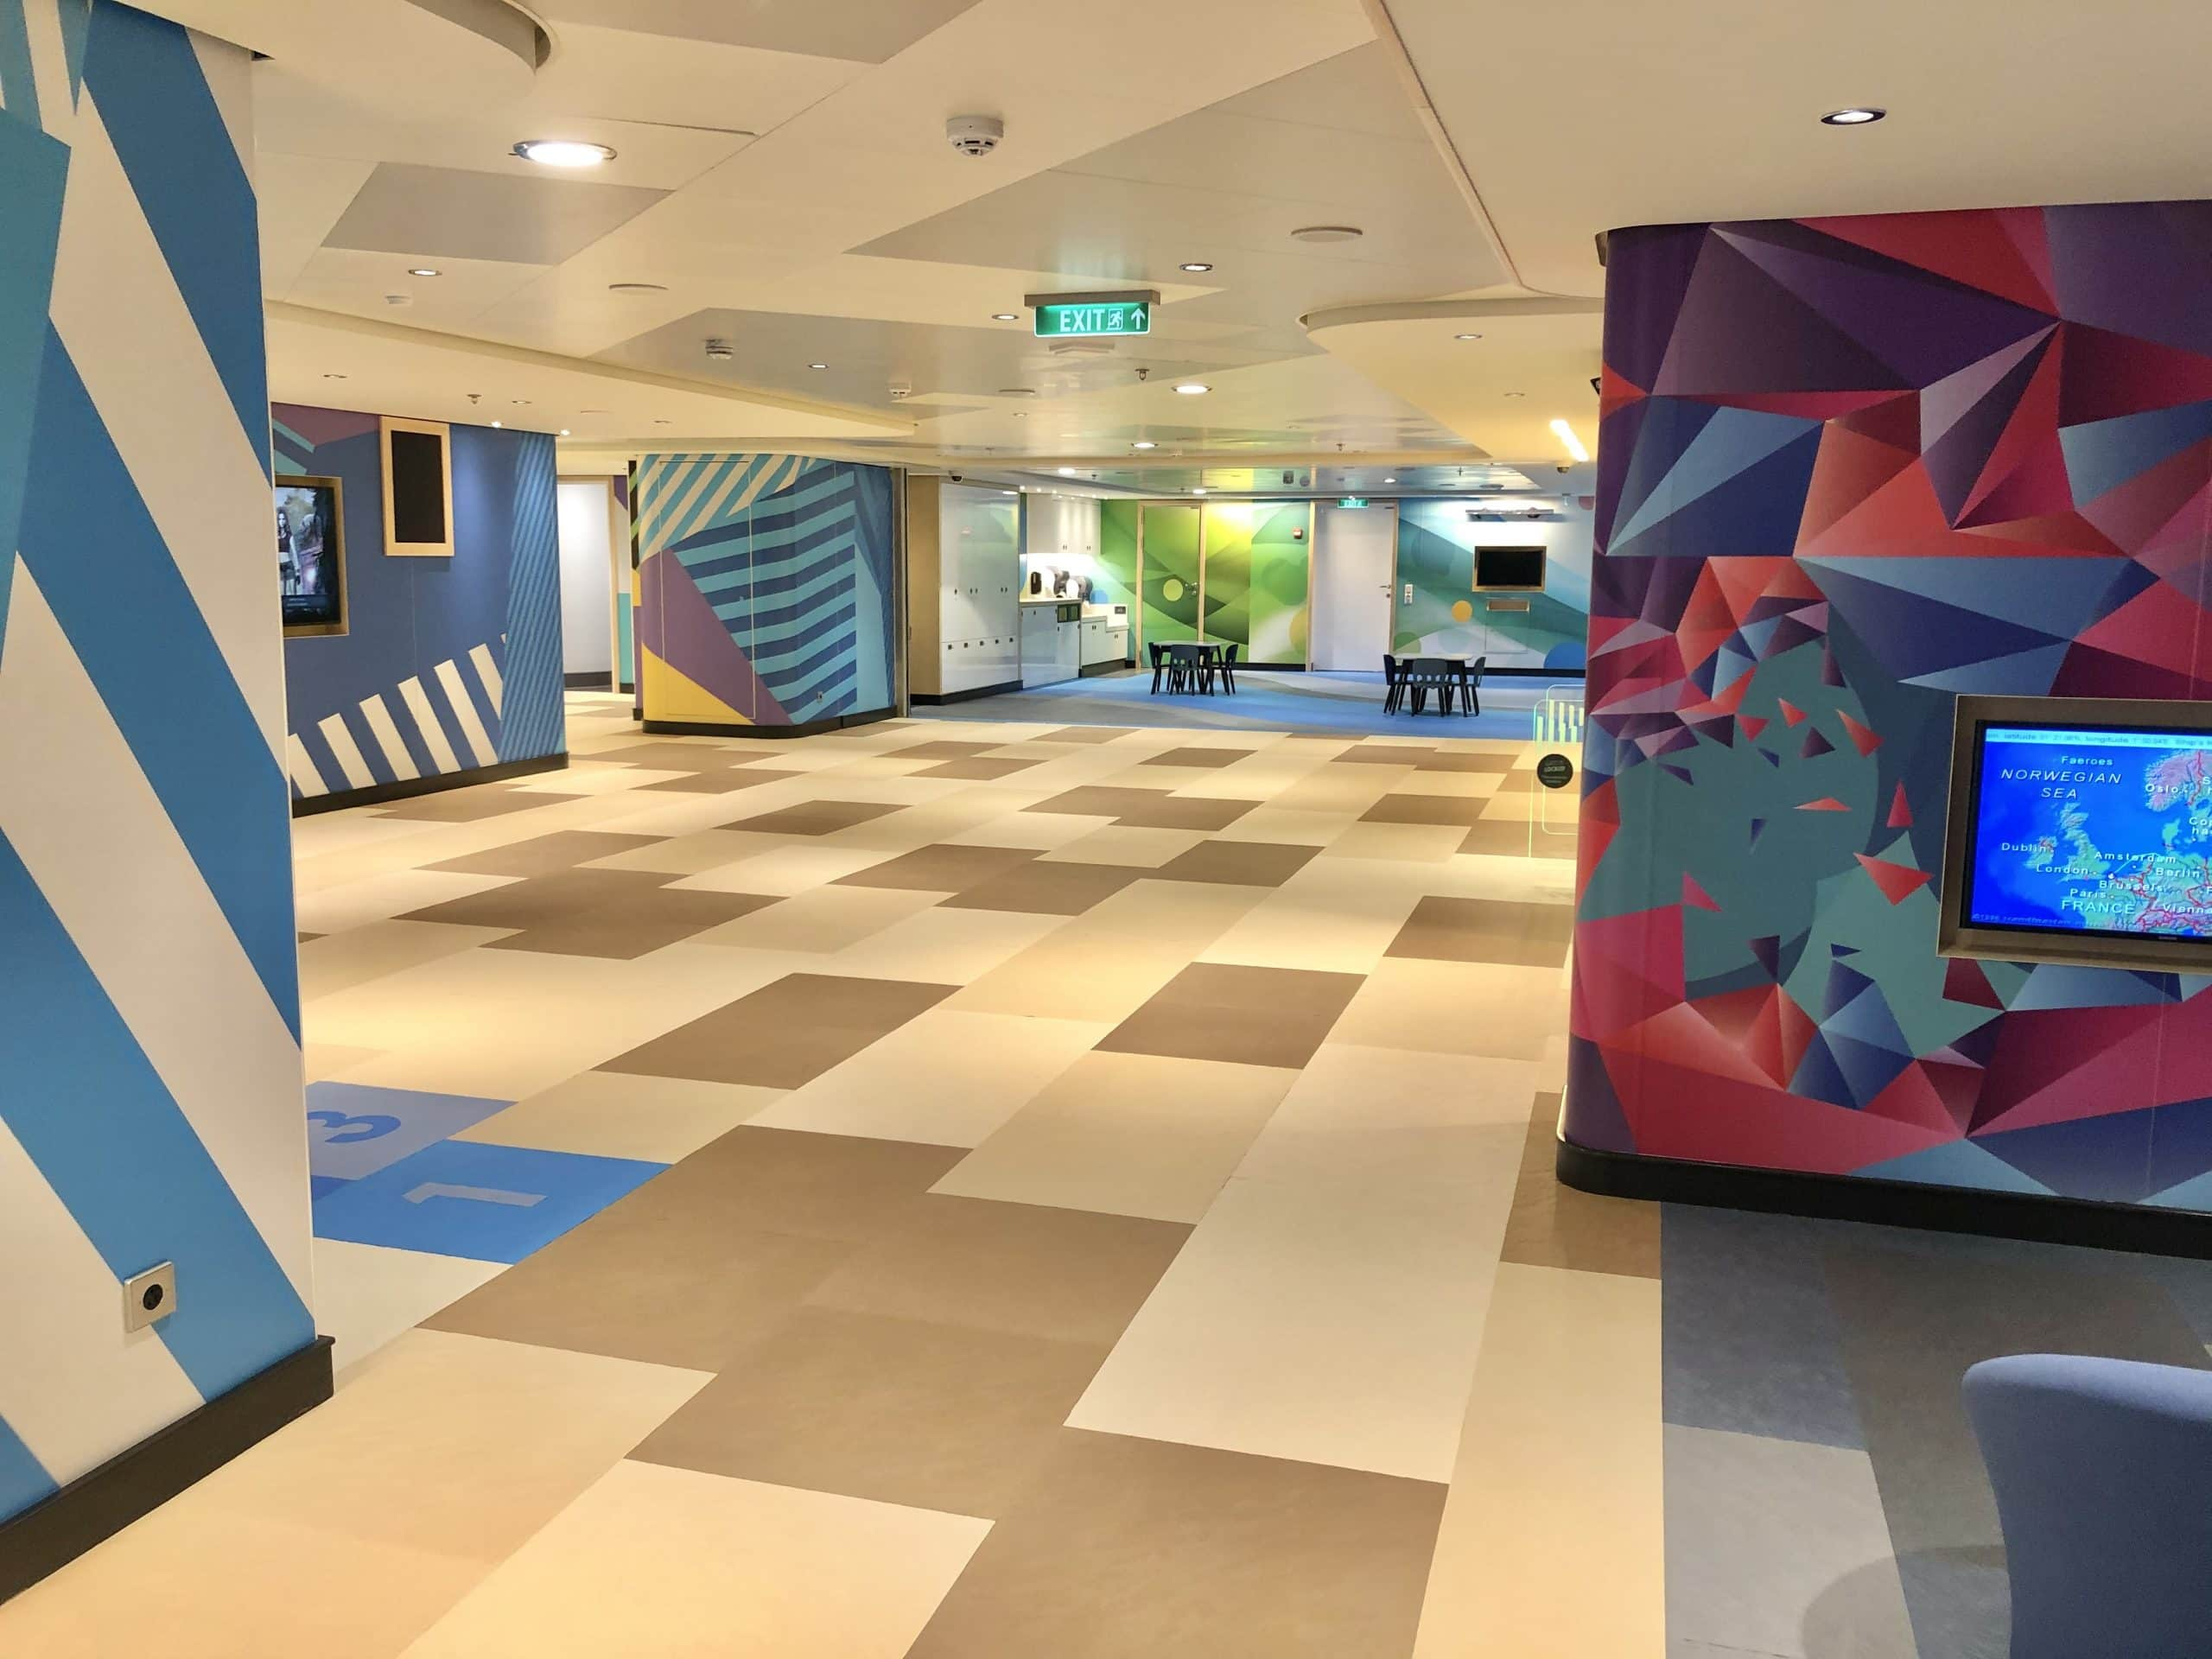 The Norwegian Encore Kids Clubs and Youth Programmes are Fun, Spacious and full of colour